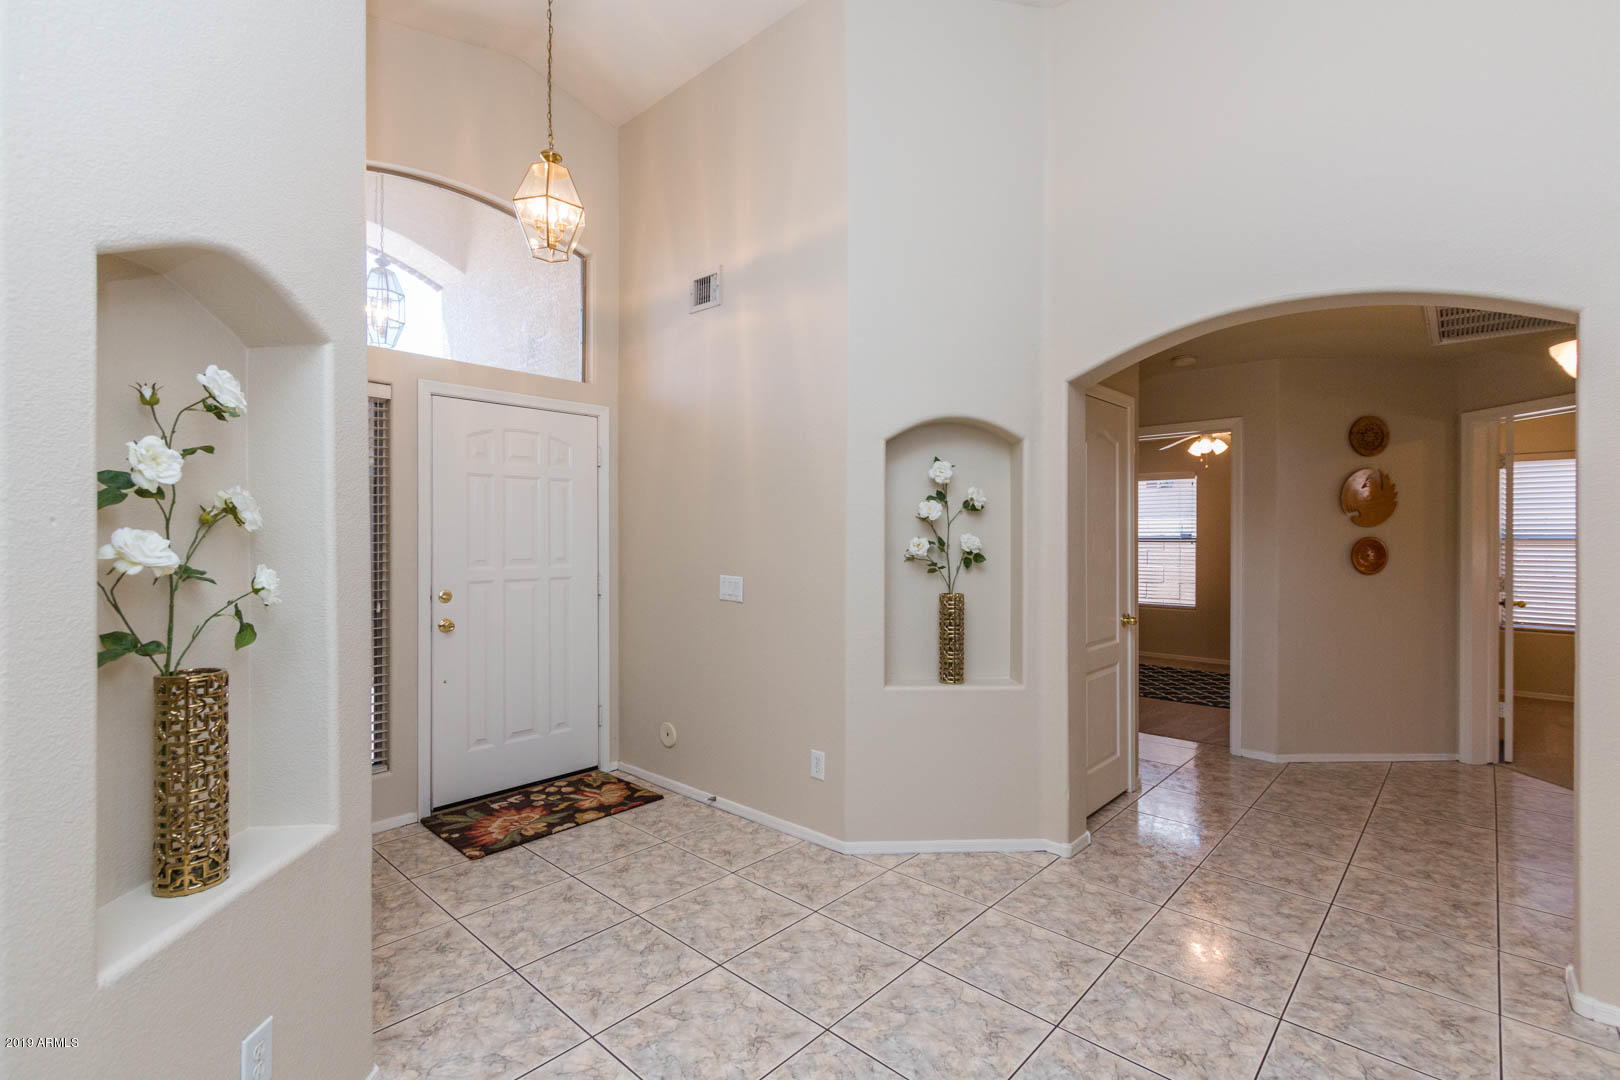 Entry - Hallway to Bedrooms